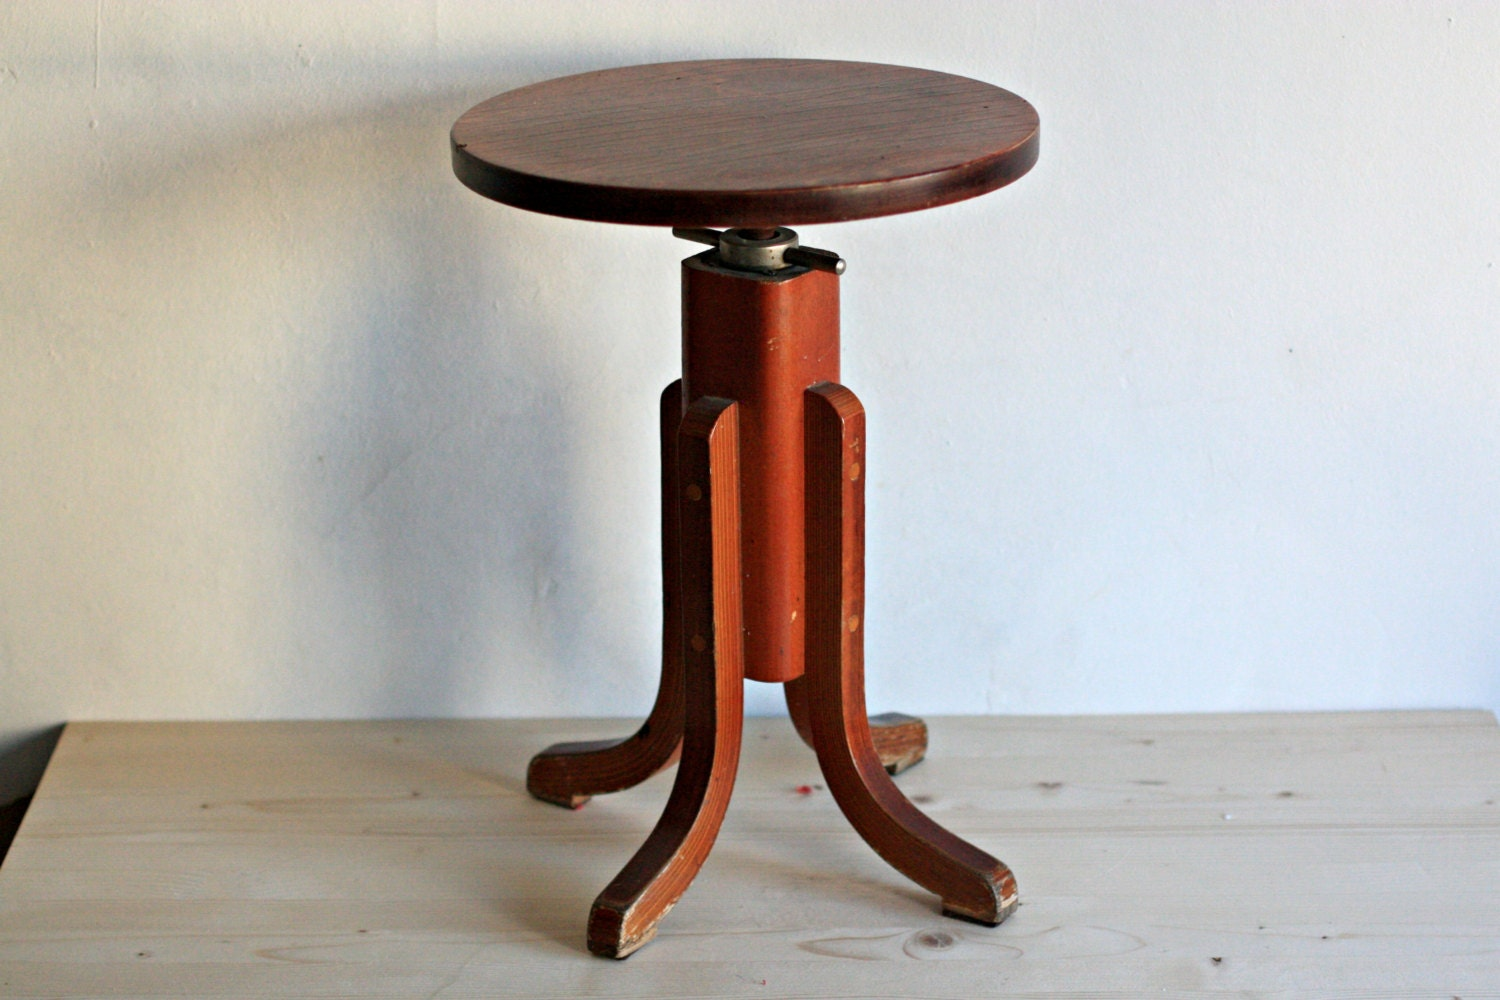 vintage piano stool artist stool wooden coffee table